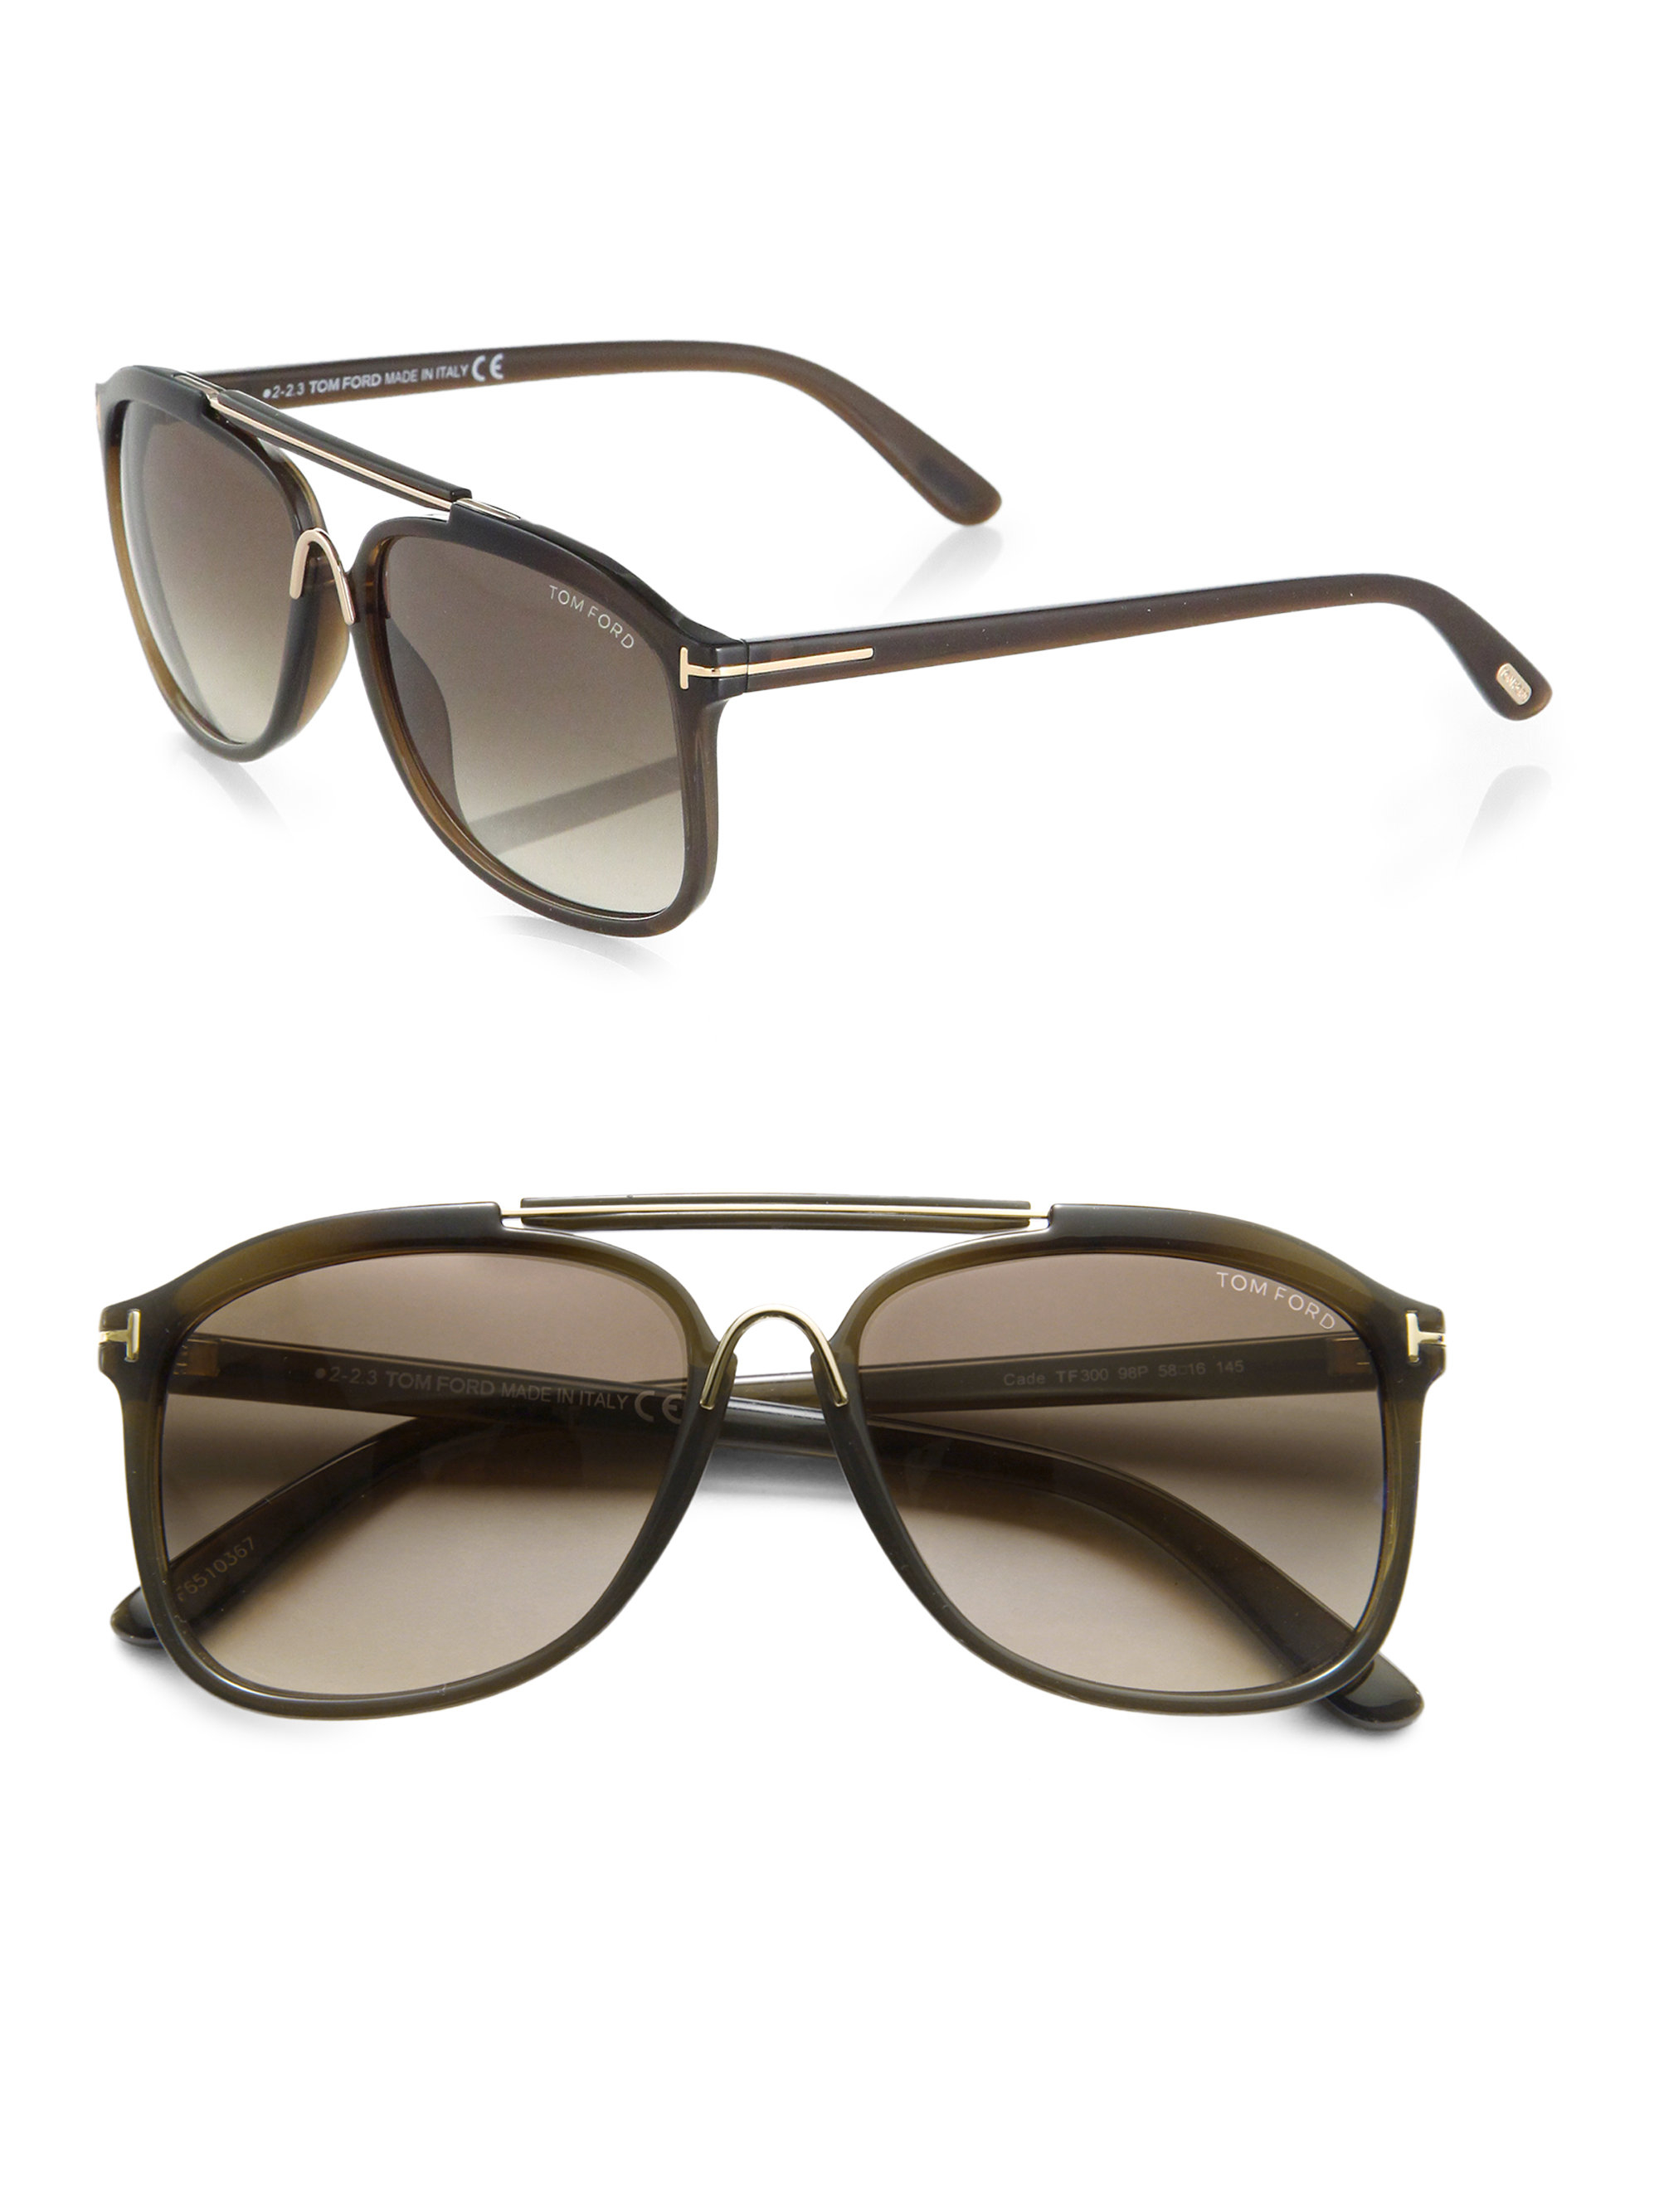 f2600af05d40 Tom Ford Eyewear Sunglasses